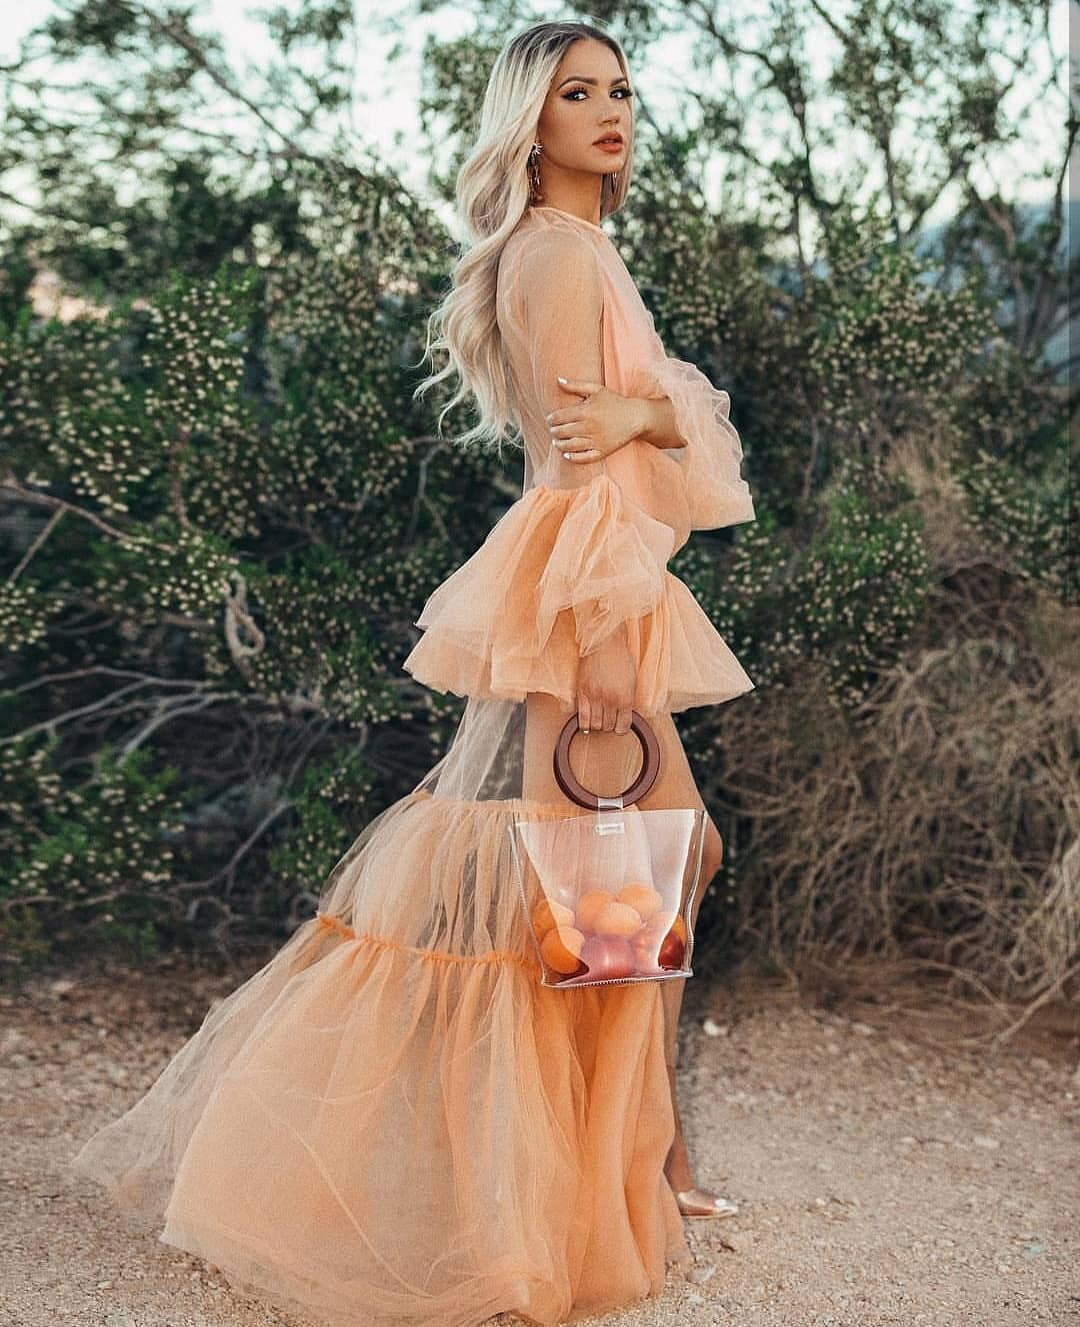 Pastel Peach Tulle Ruffle Maxi Dress For Summer Special Parties 2021